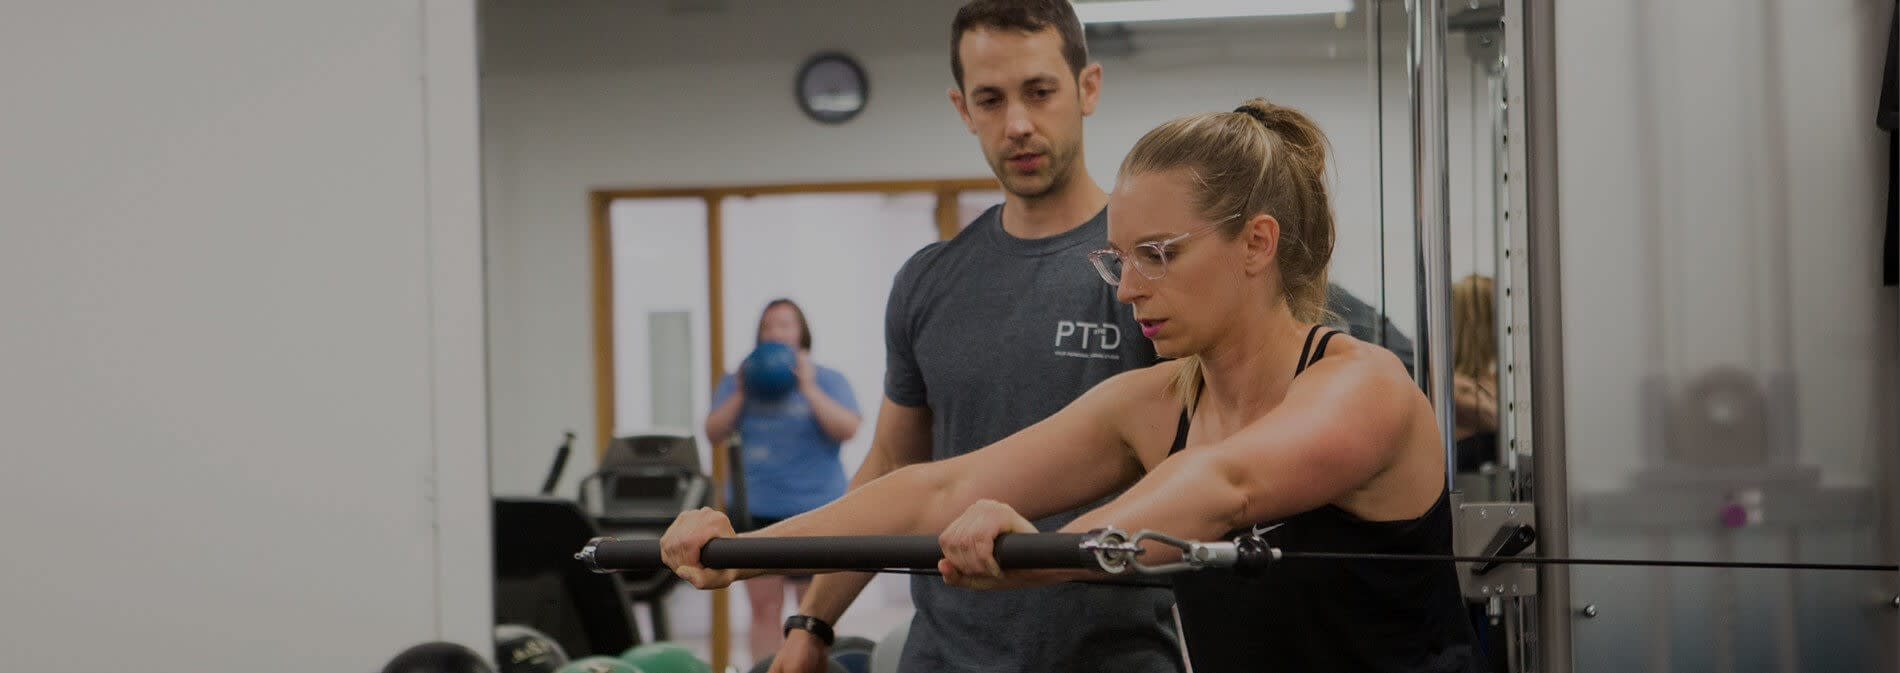 <em>Helping the Detroit Community Become Happier and Healthier One Workout at a Time</em>